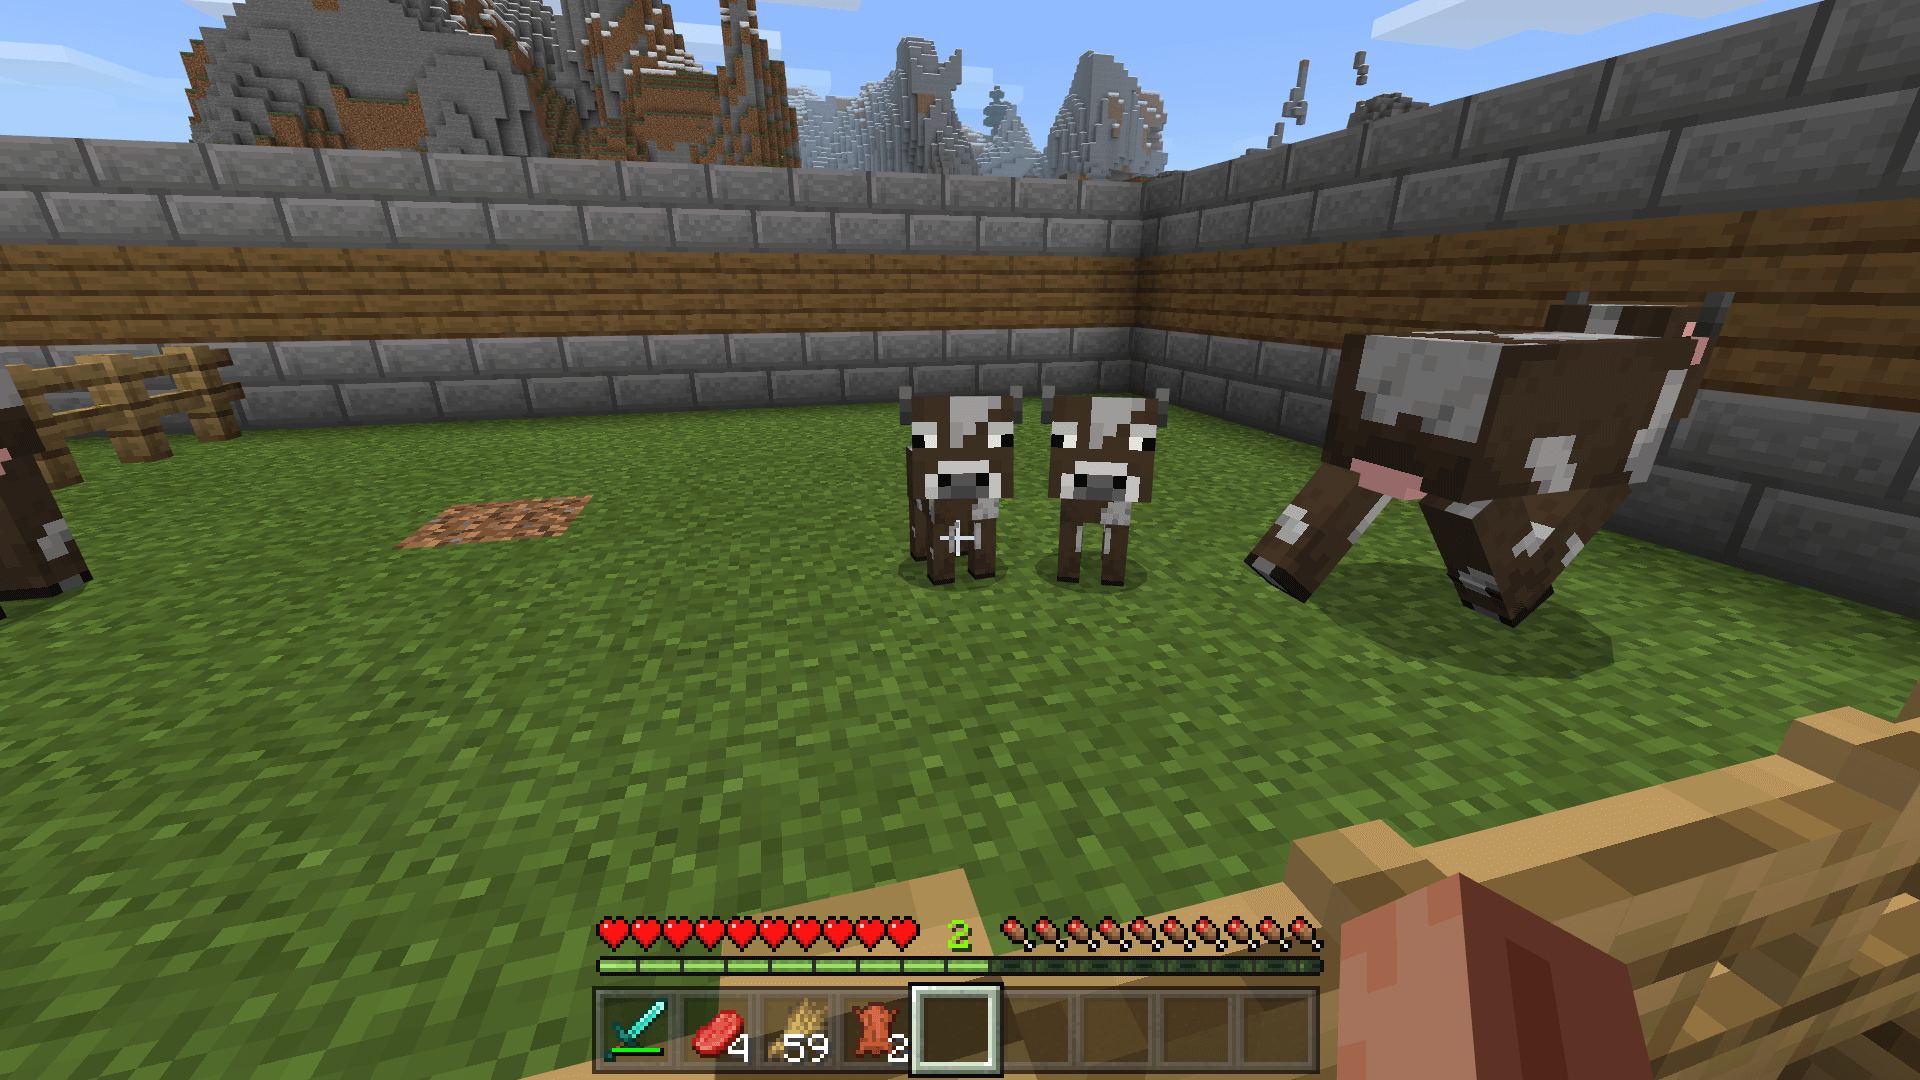 How To Get Leather In Minecraft